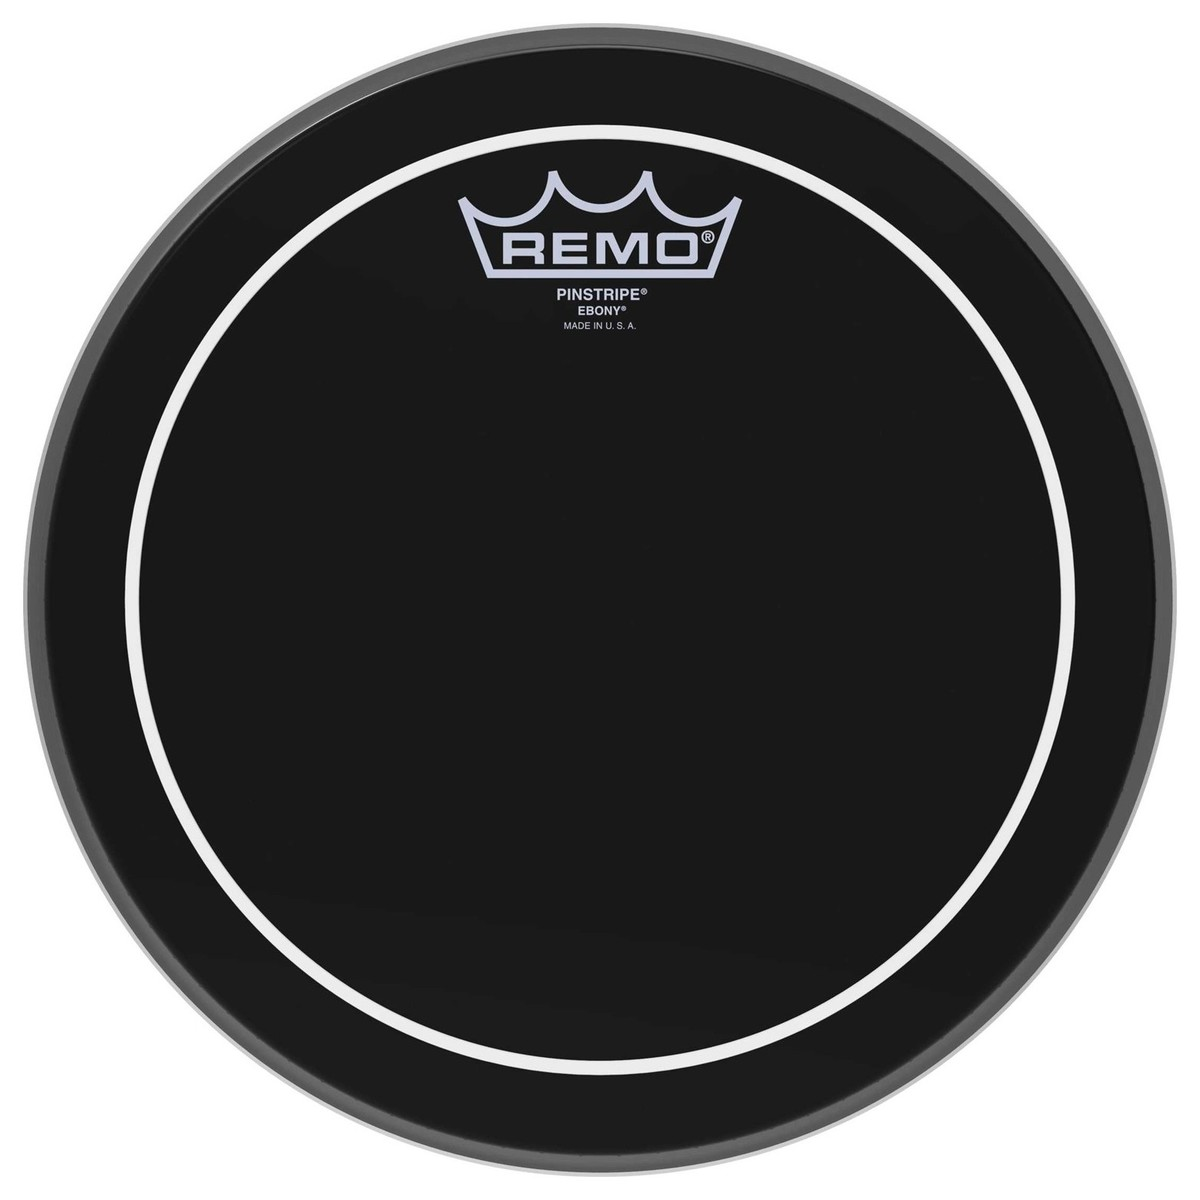 Remo Pinstripe Ebony 13 Drum Head